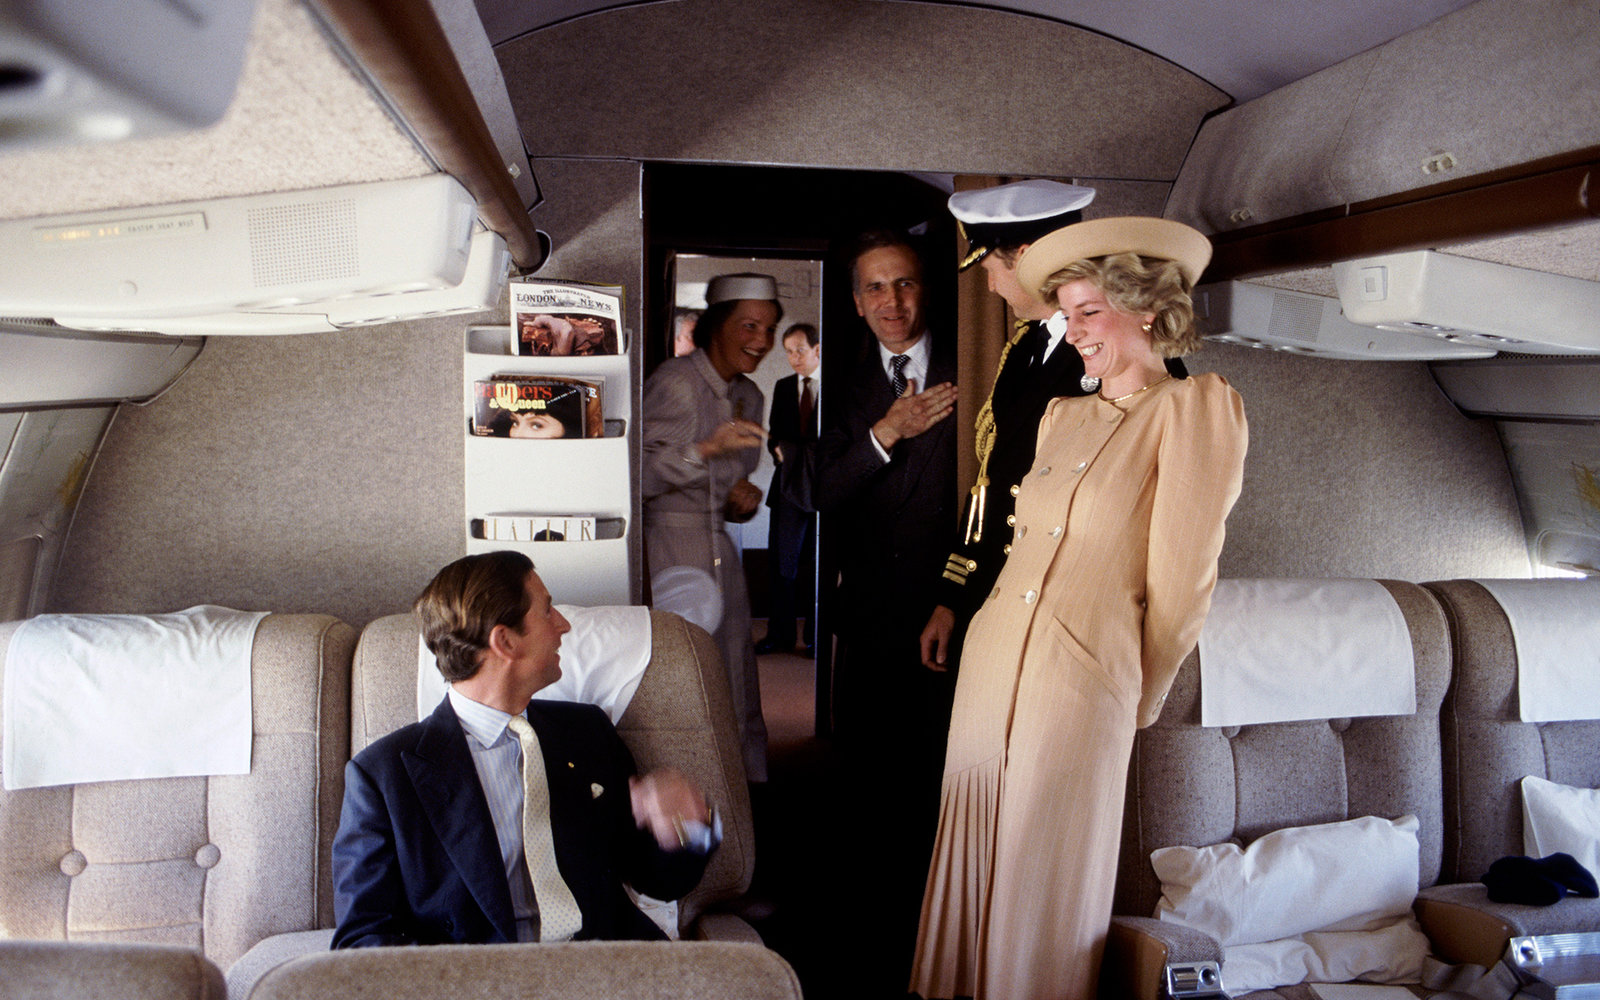 AUSTRALIA - OCTOBER 27:  The Prince And Princess Of Wales On Board A Royal Flight To Australia, Laughing With Their Staff  (Photo by Tim Graham/Getty Images)